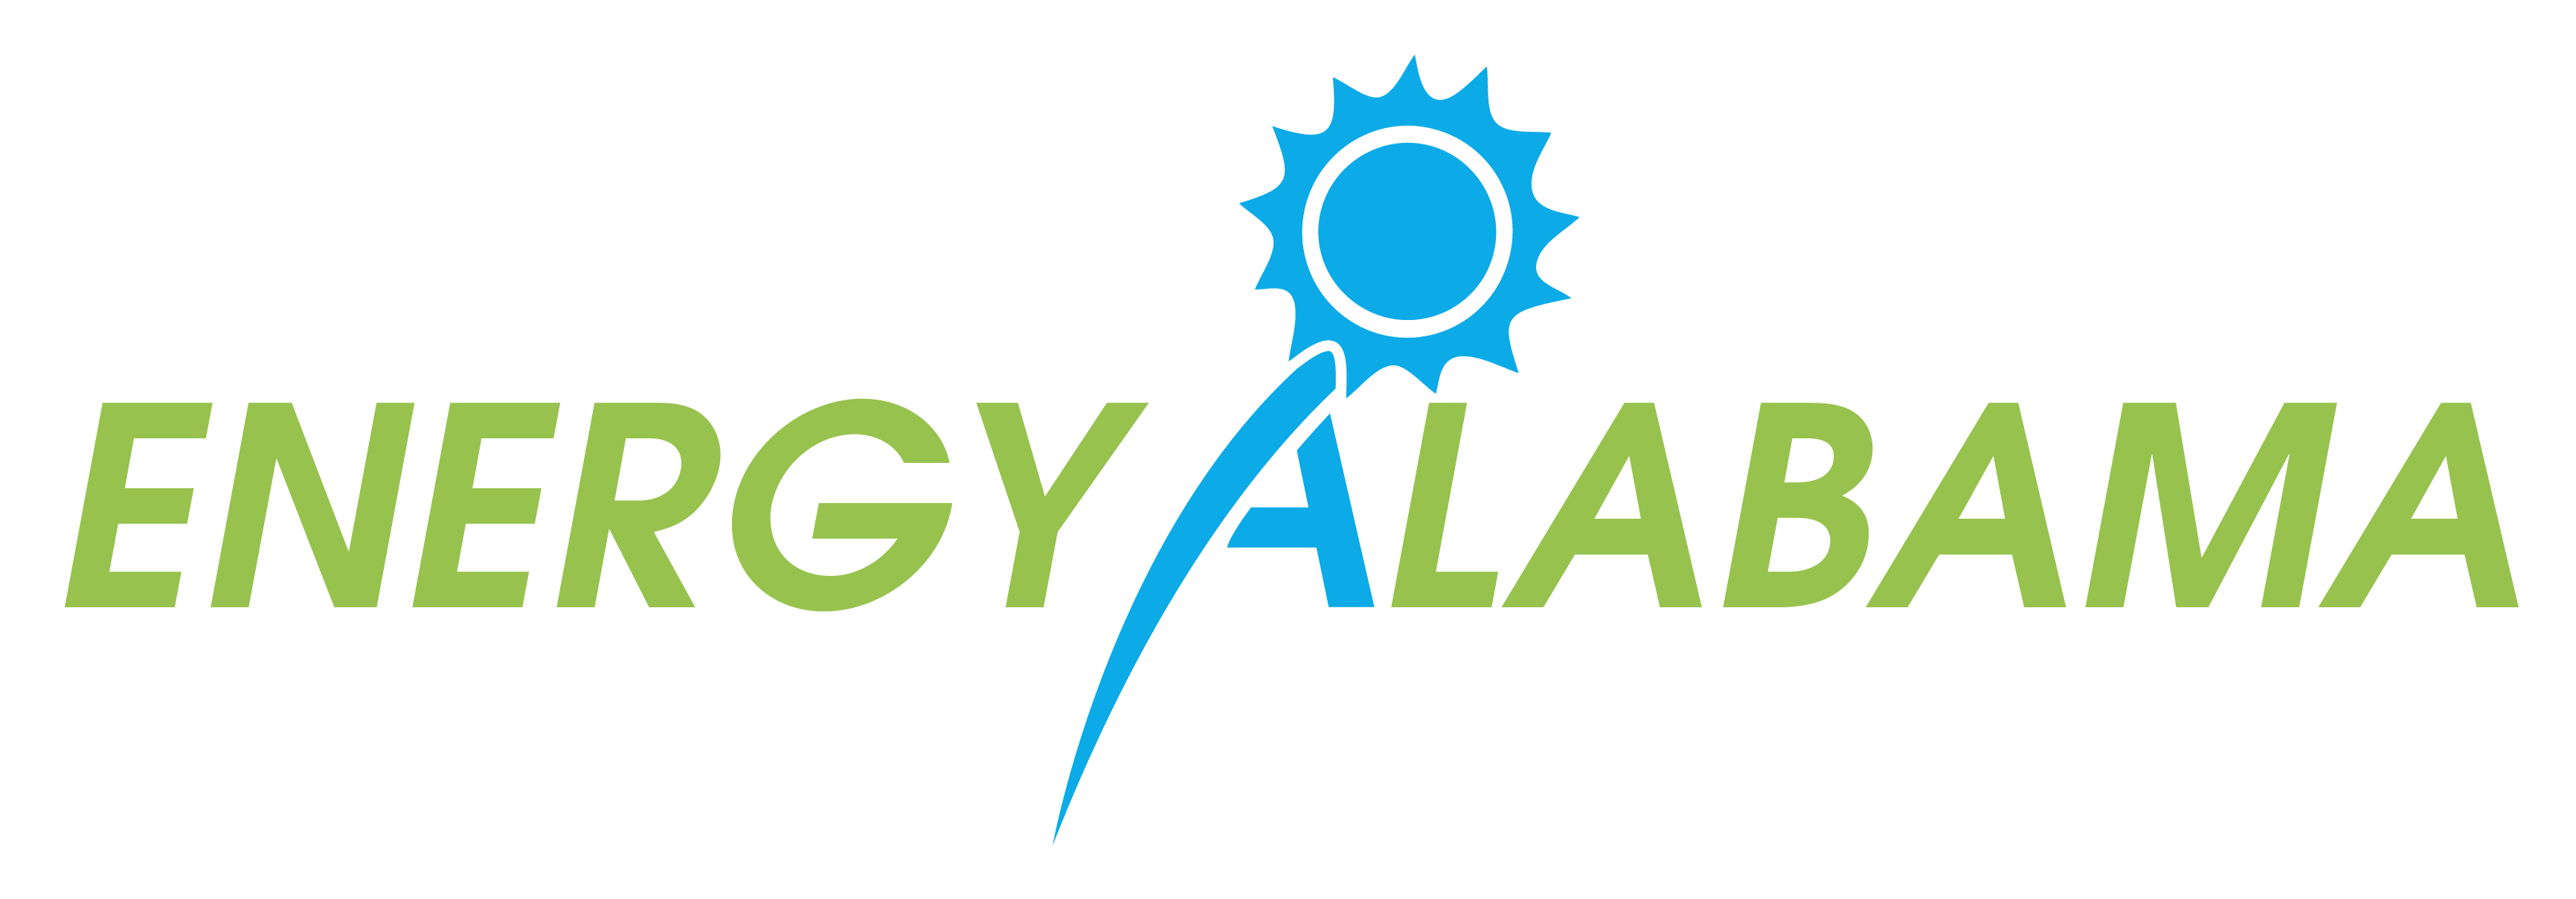 Energy Alabama